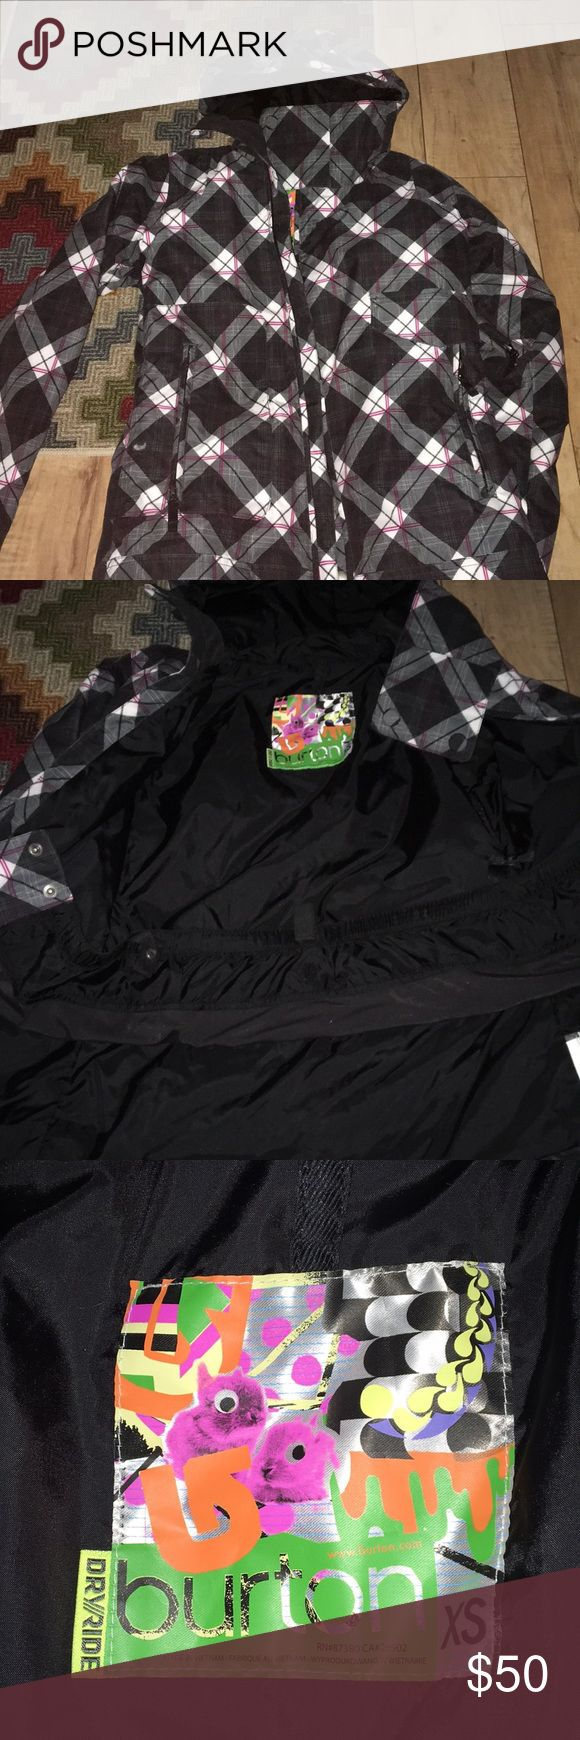 Girls Burtons ski/snowboard jacket Grey black white pink, perfect condition, wore a few times snowboarding for one season, matching pink snow pants if interested Burton Jackets & Coats